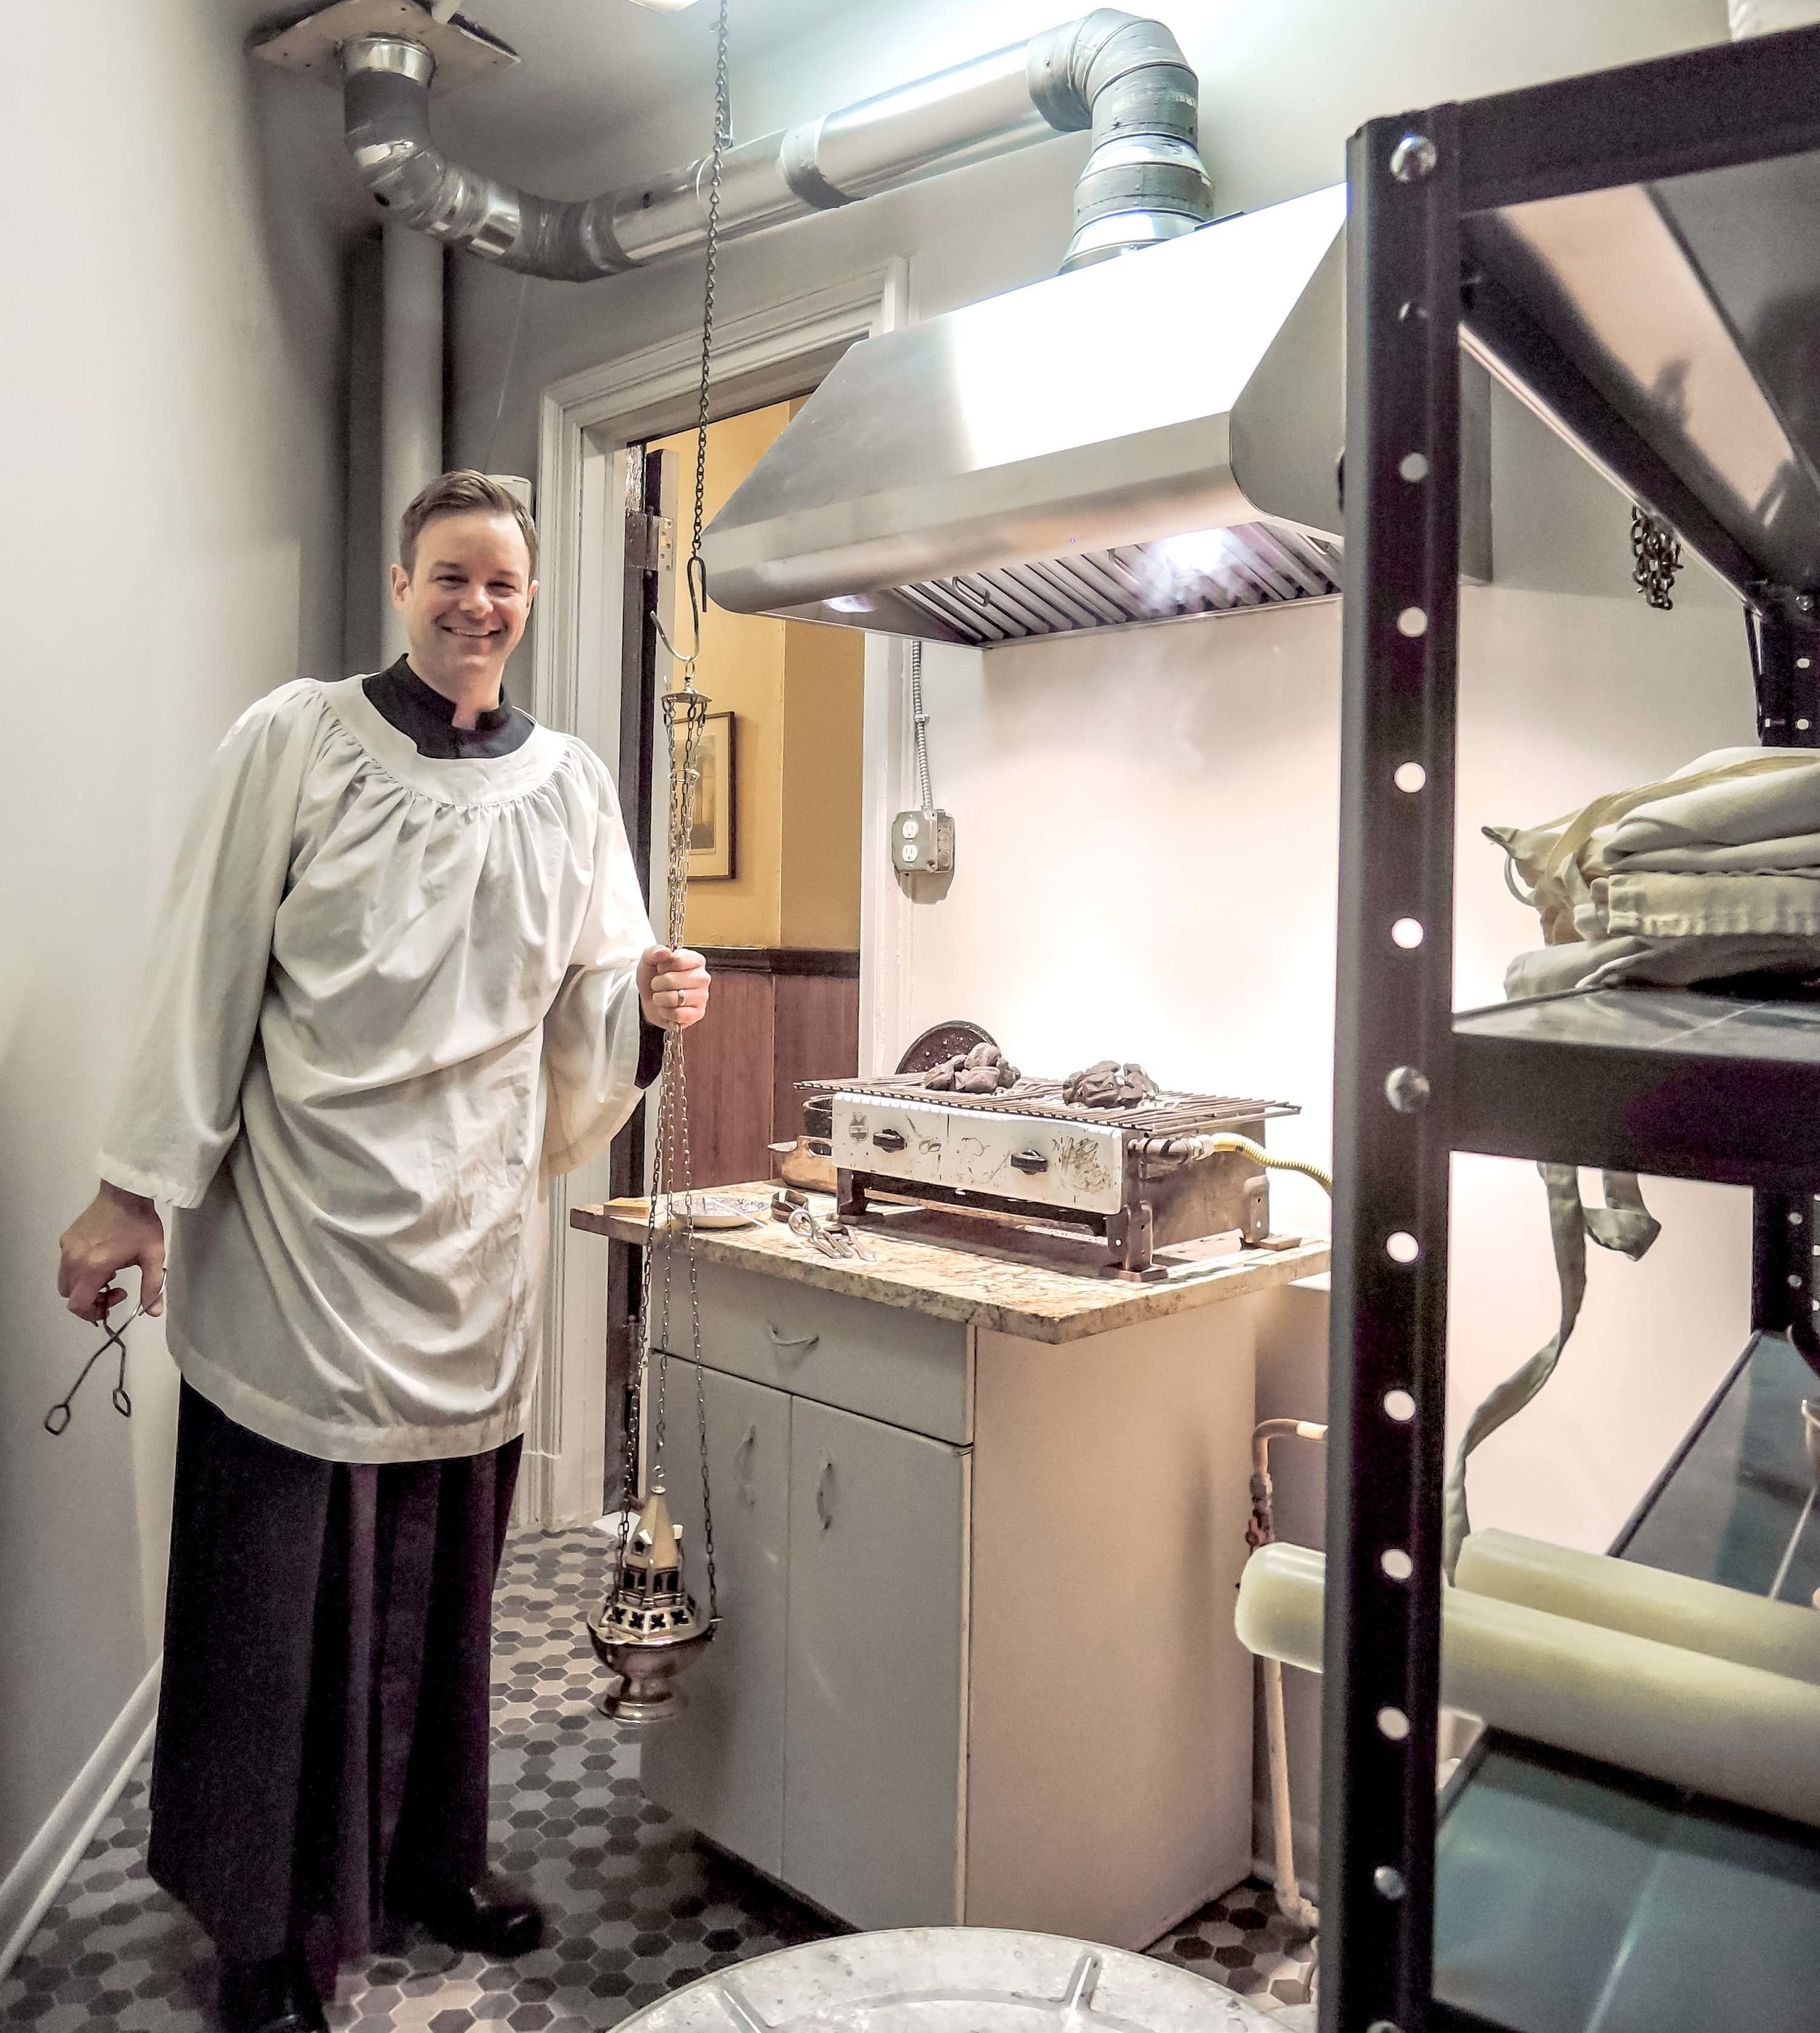 Clark Mitchell, thurifer, in the newly renovated Smoke Room